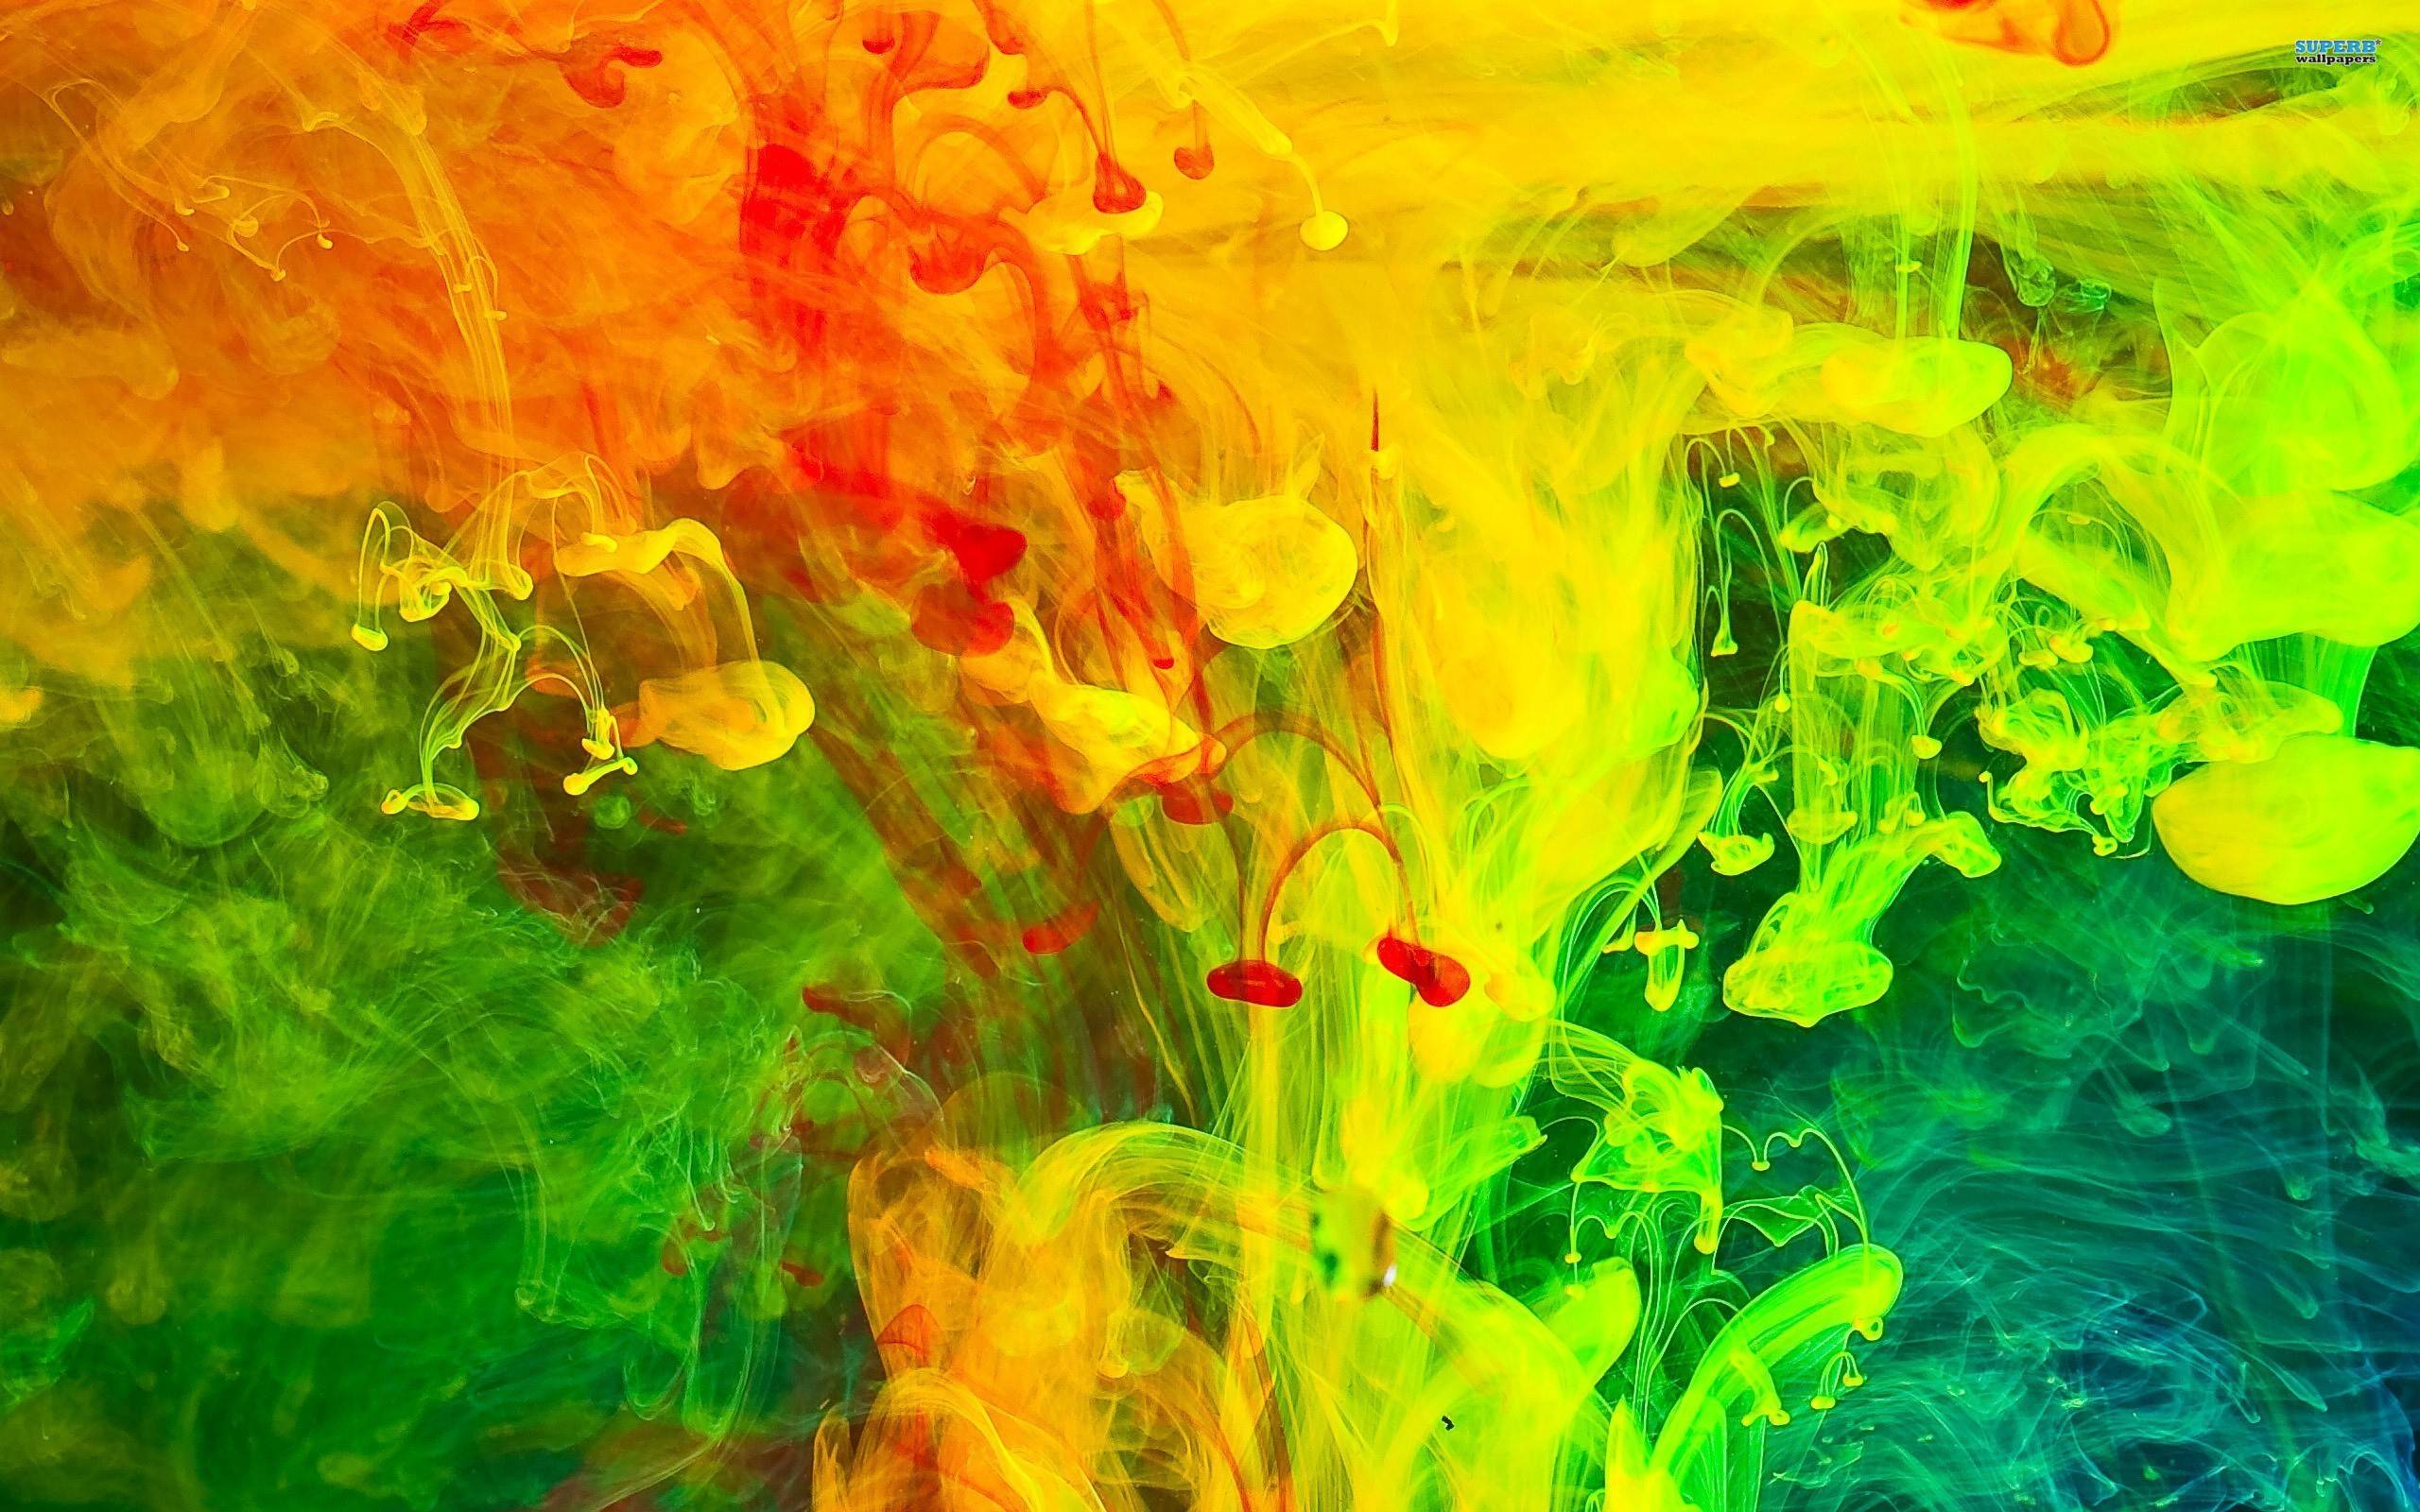 Abstract Painting Wallpapers 2560x1600